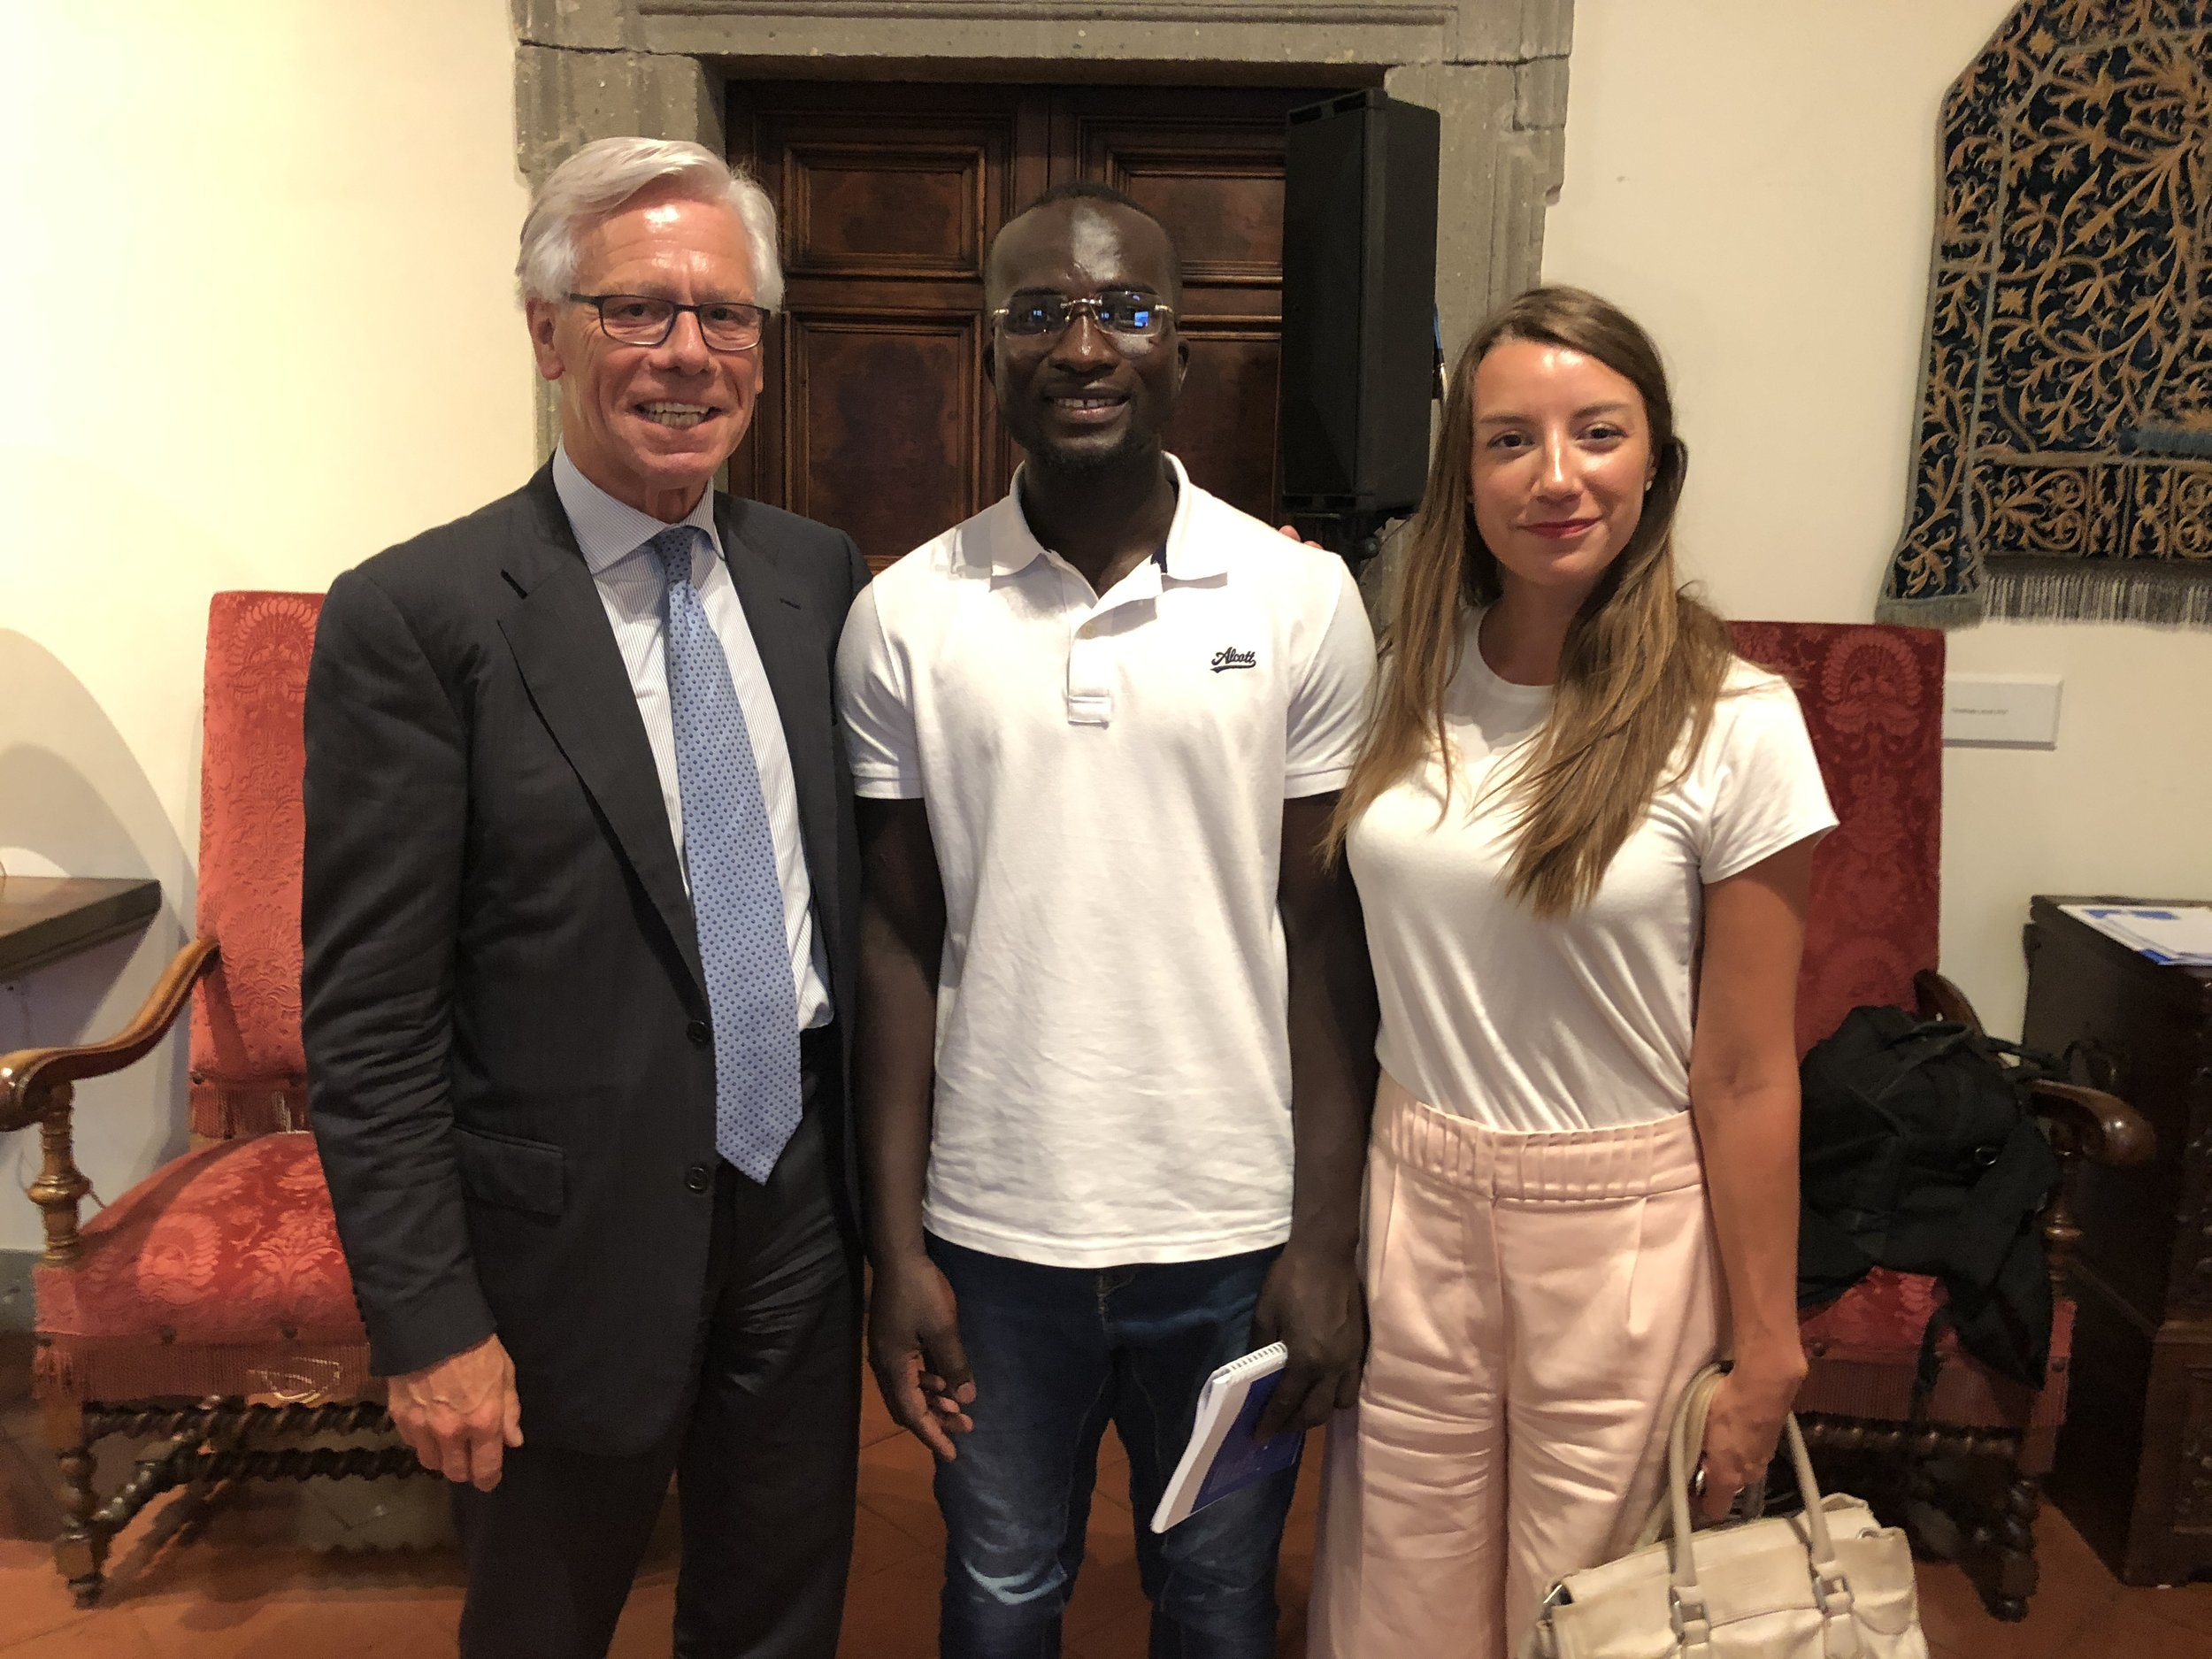 Ambassador Vollebaek, Bakary, and the author at the Embassy of Switzerland, Rome. 11 June 2018.